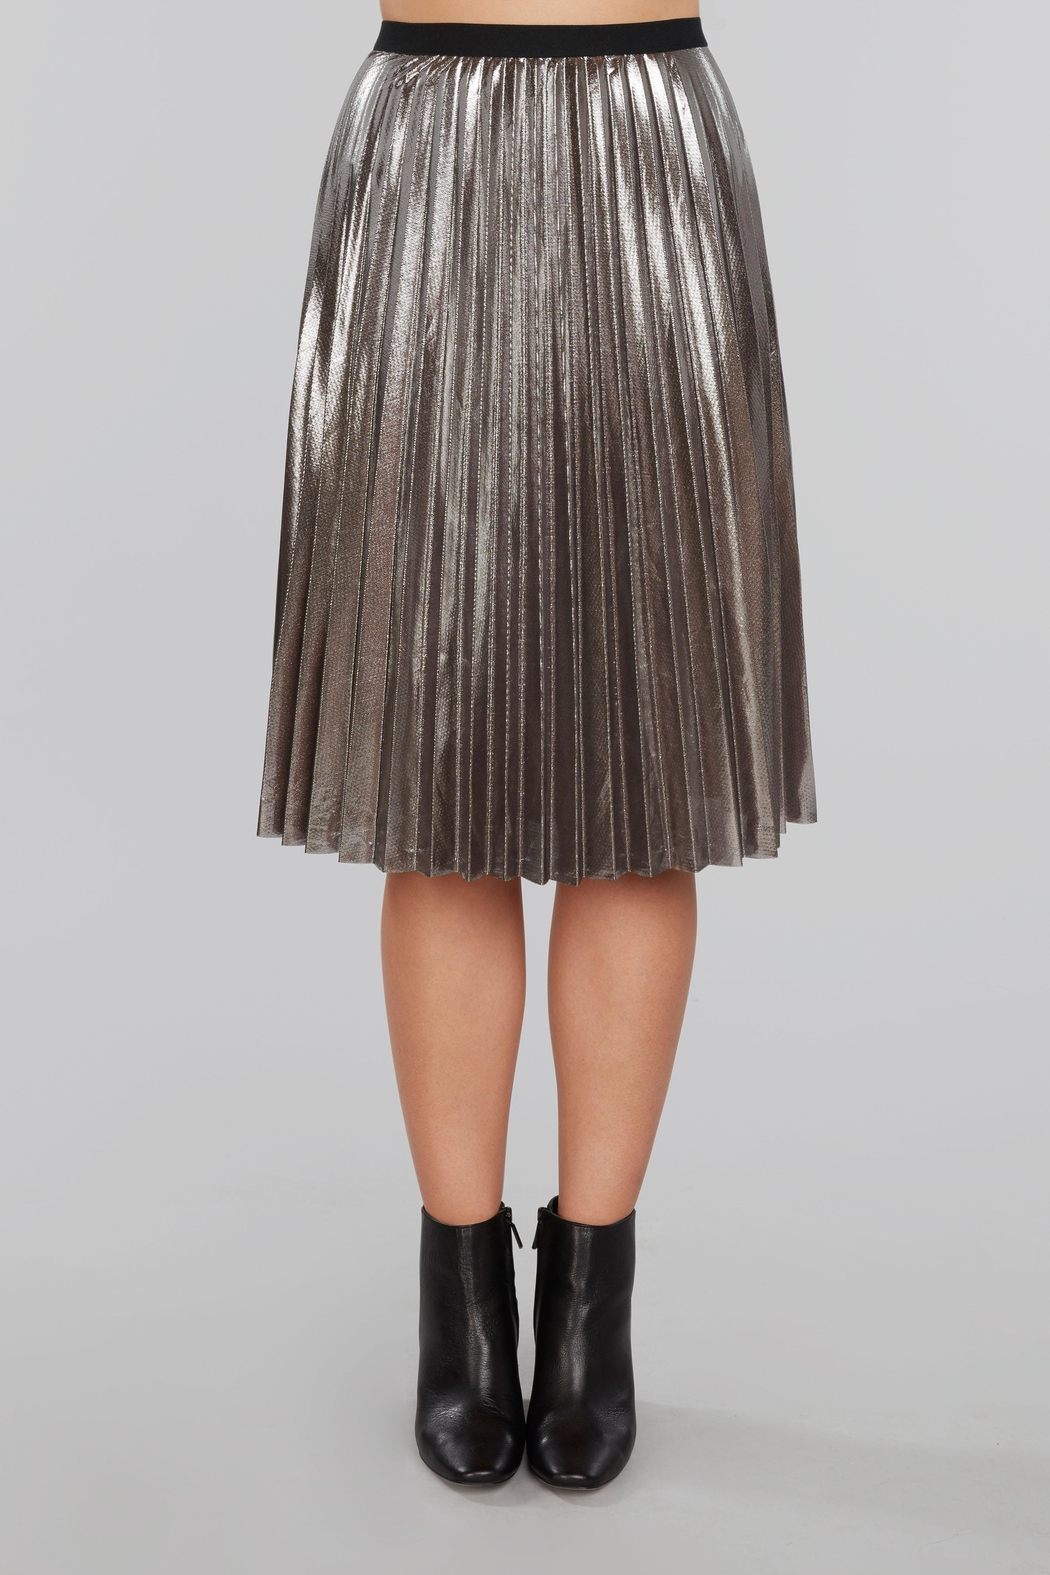 Willow & Clay Pleated Metallic Midi Skirt - Main Image